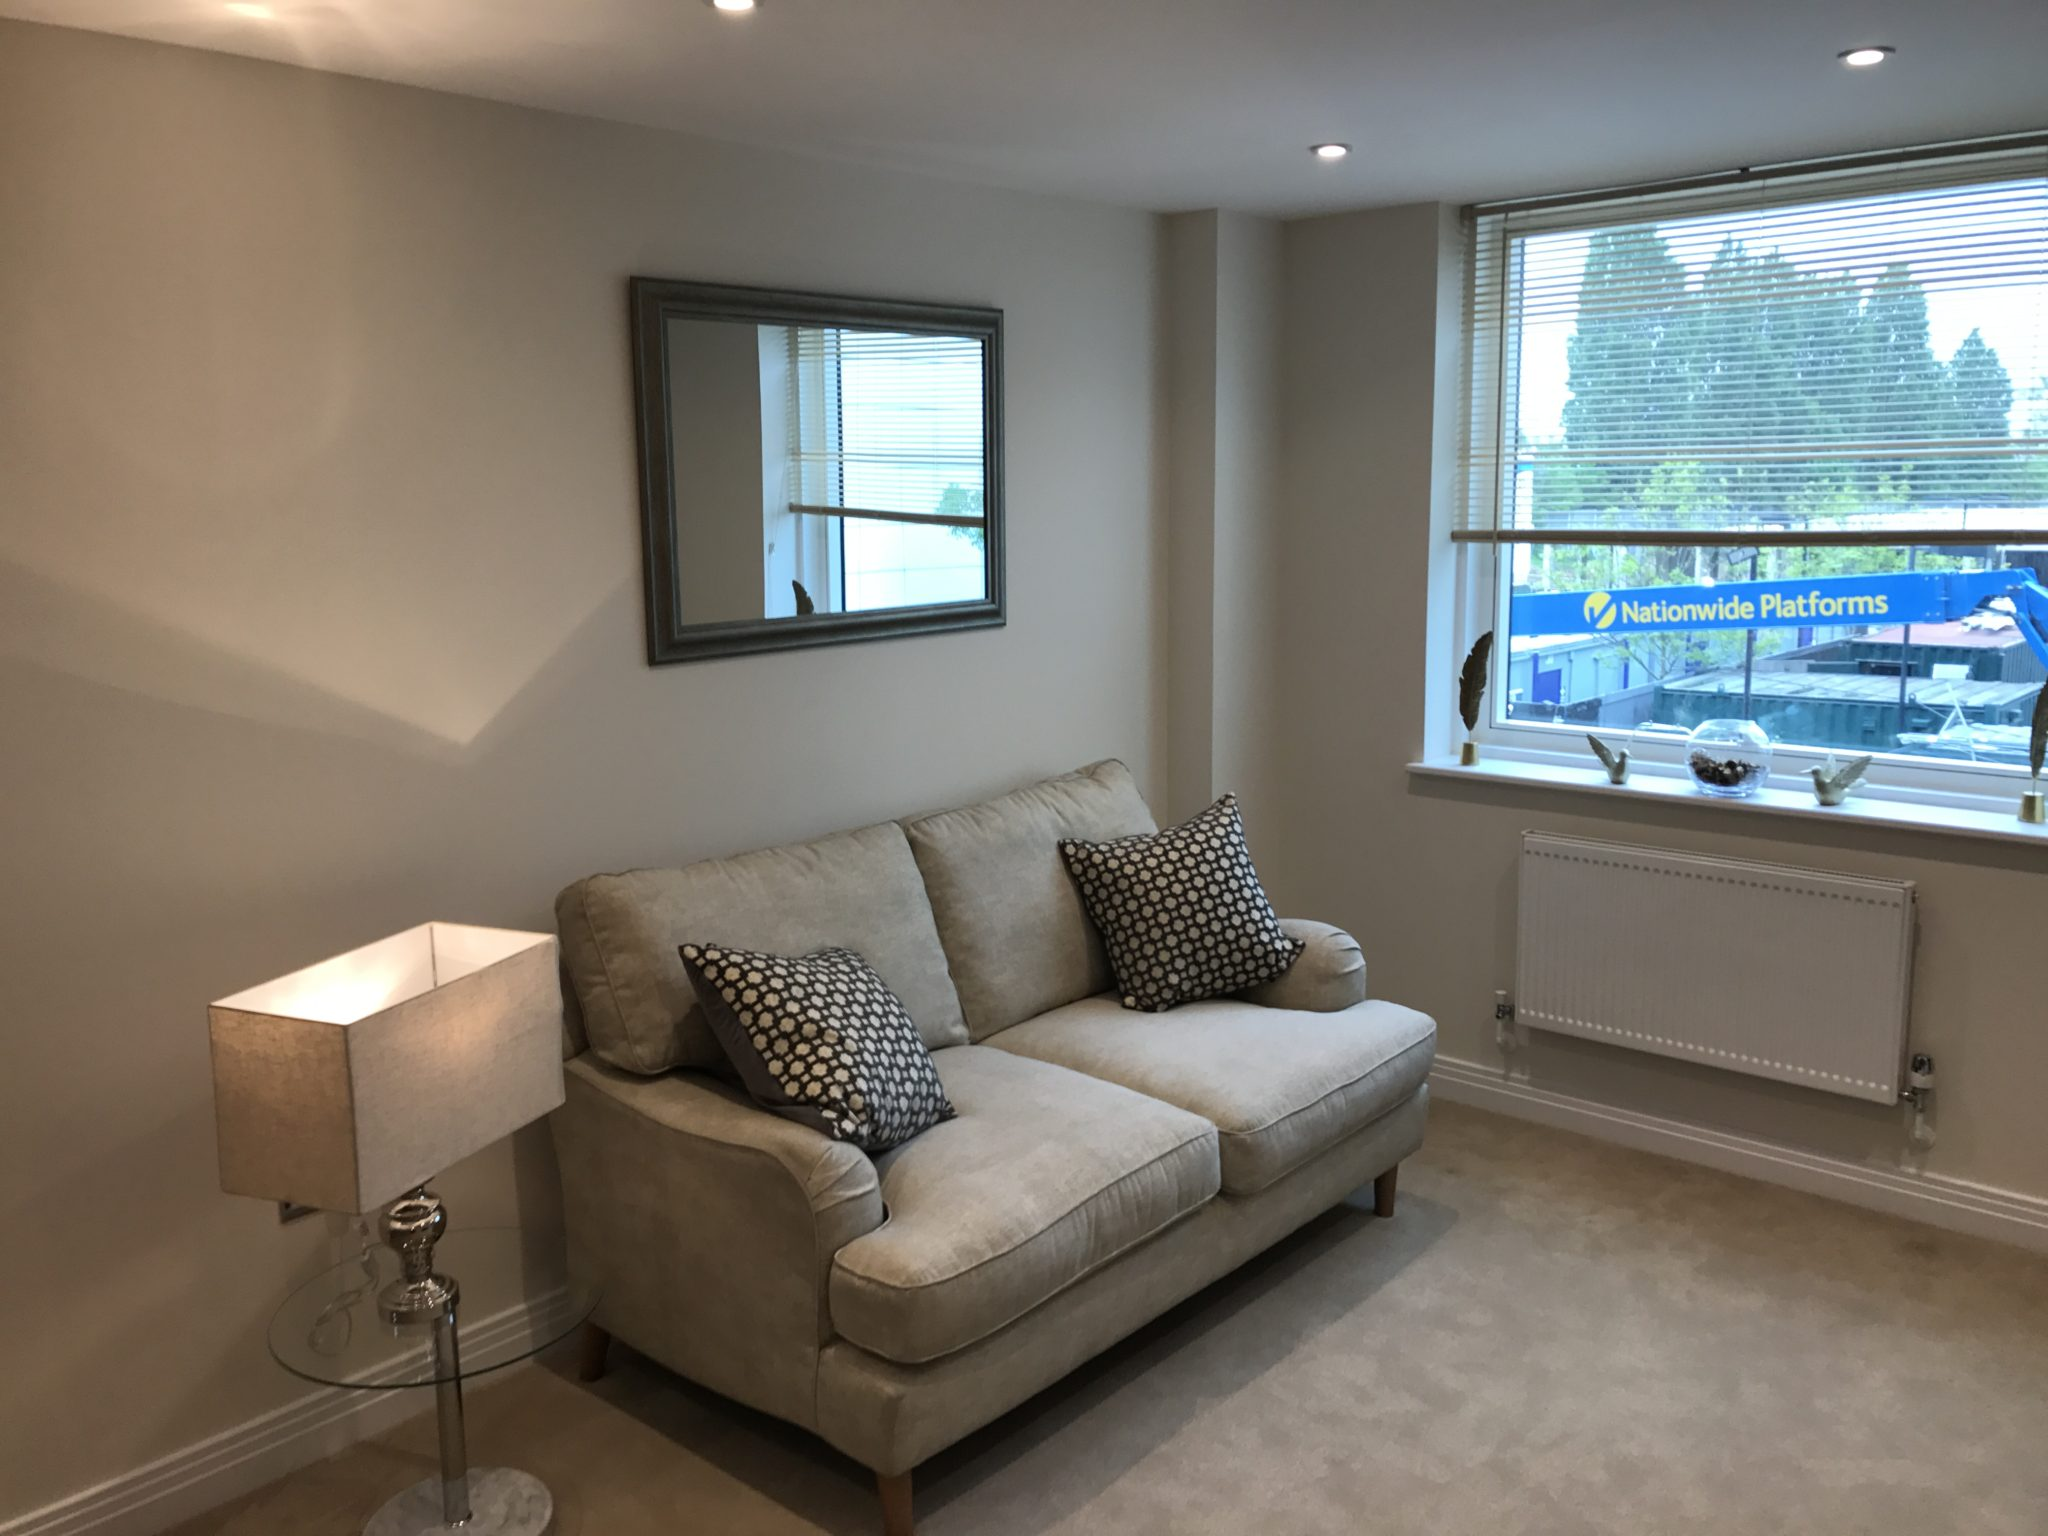 Welwyn-Garden-City-Serviced-Apartments-Times-Square-|-Lift-Access-|-Free-Wifi-|-Parking-|-Call-us-today-for-the-best-rates-on-0208-6913920|-Urban-Stay